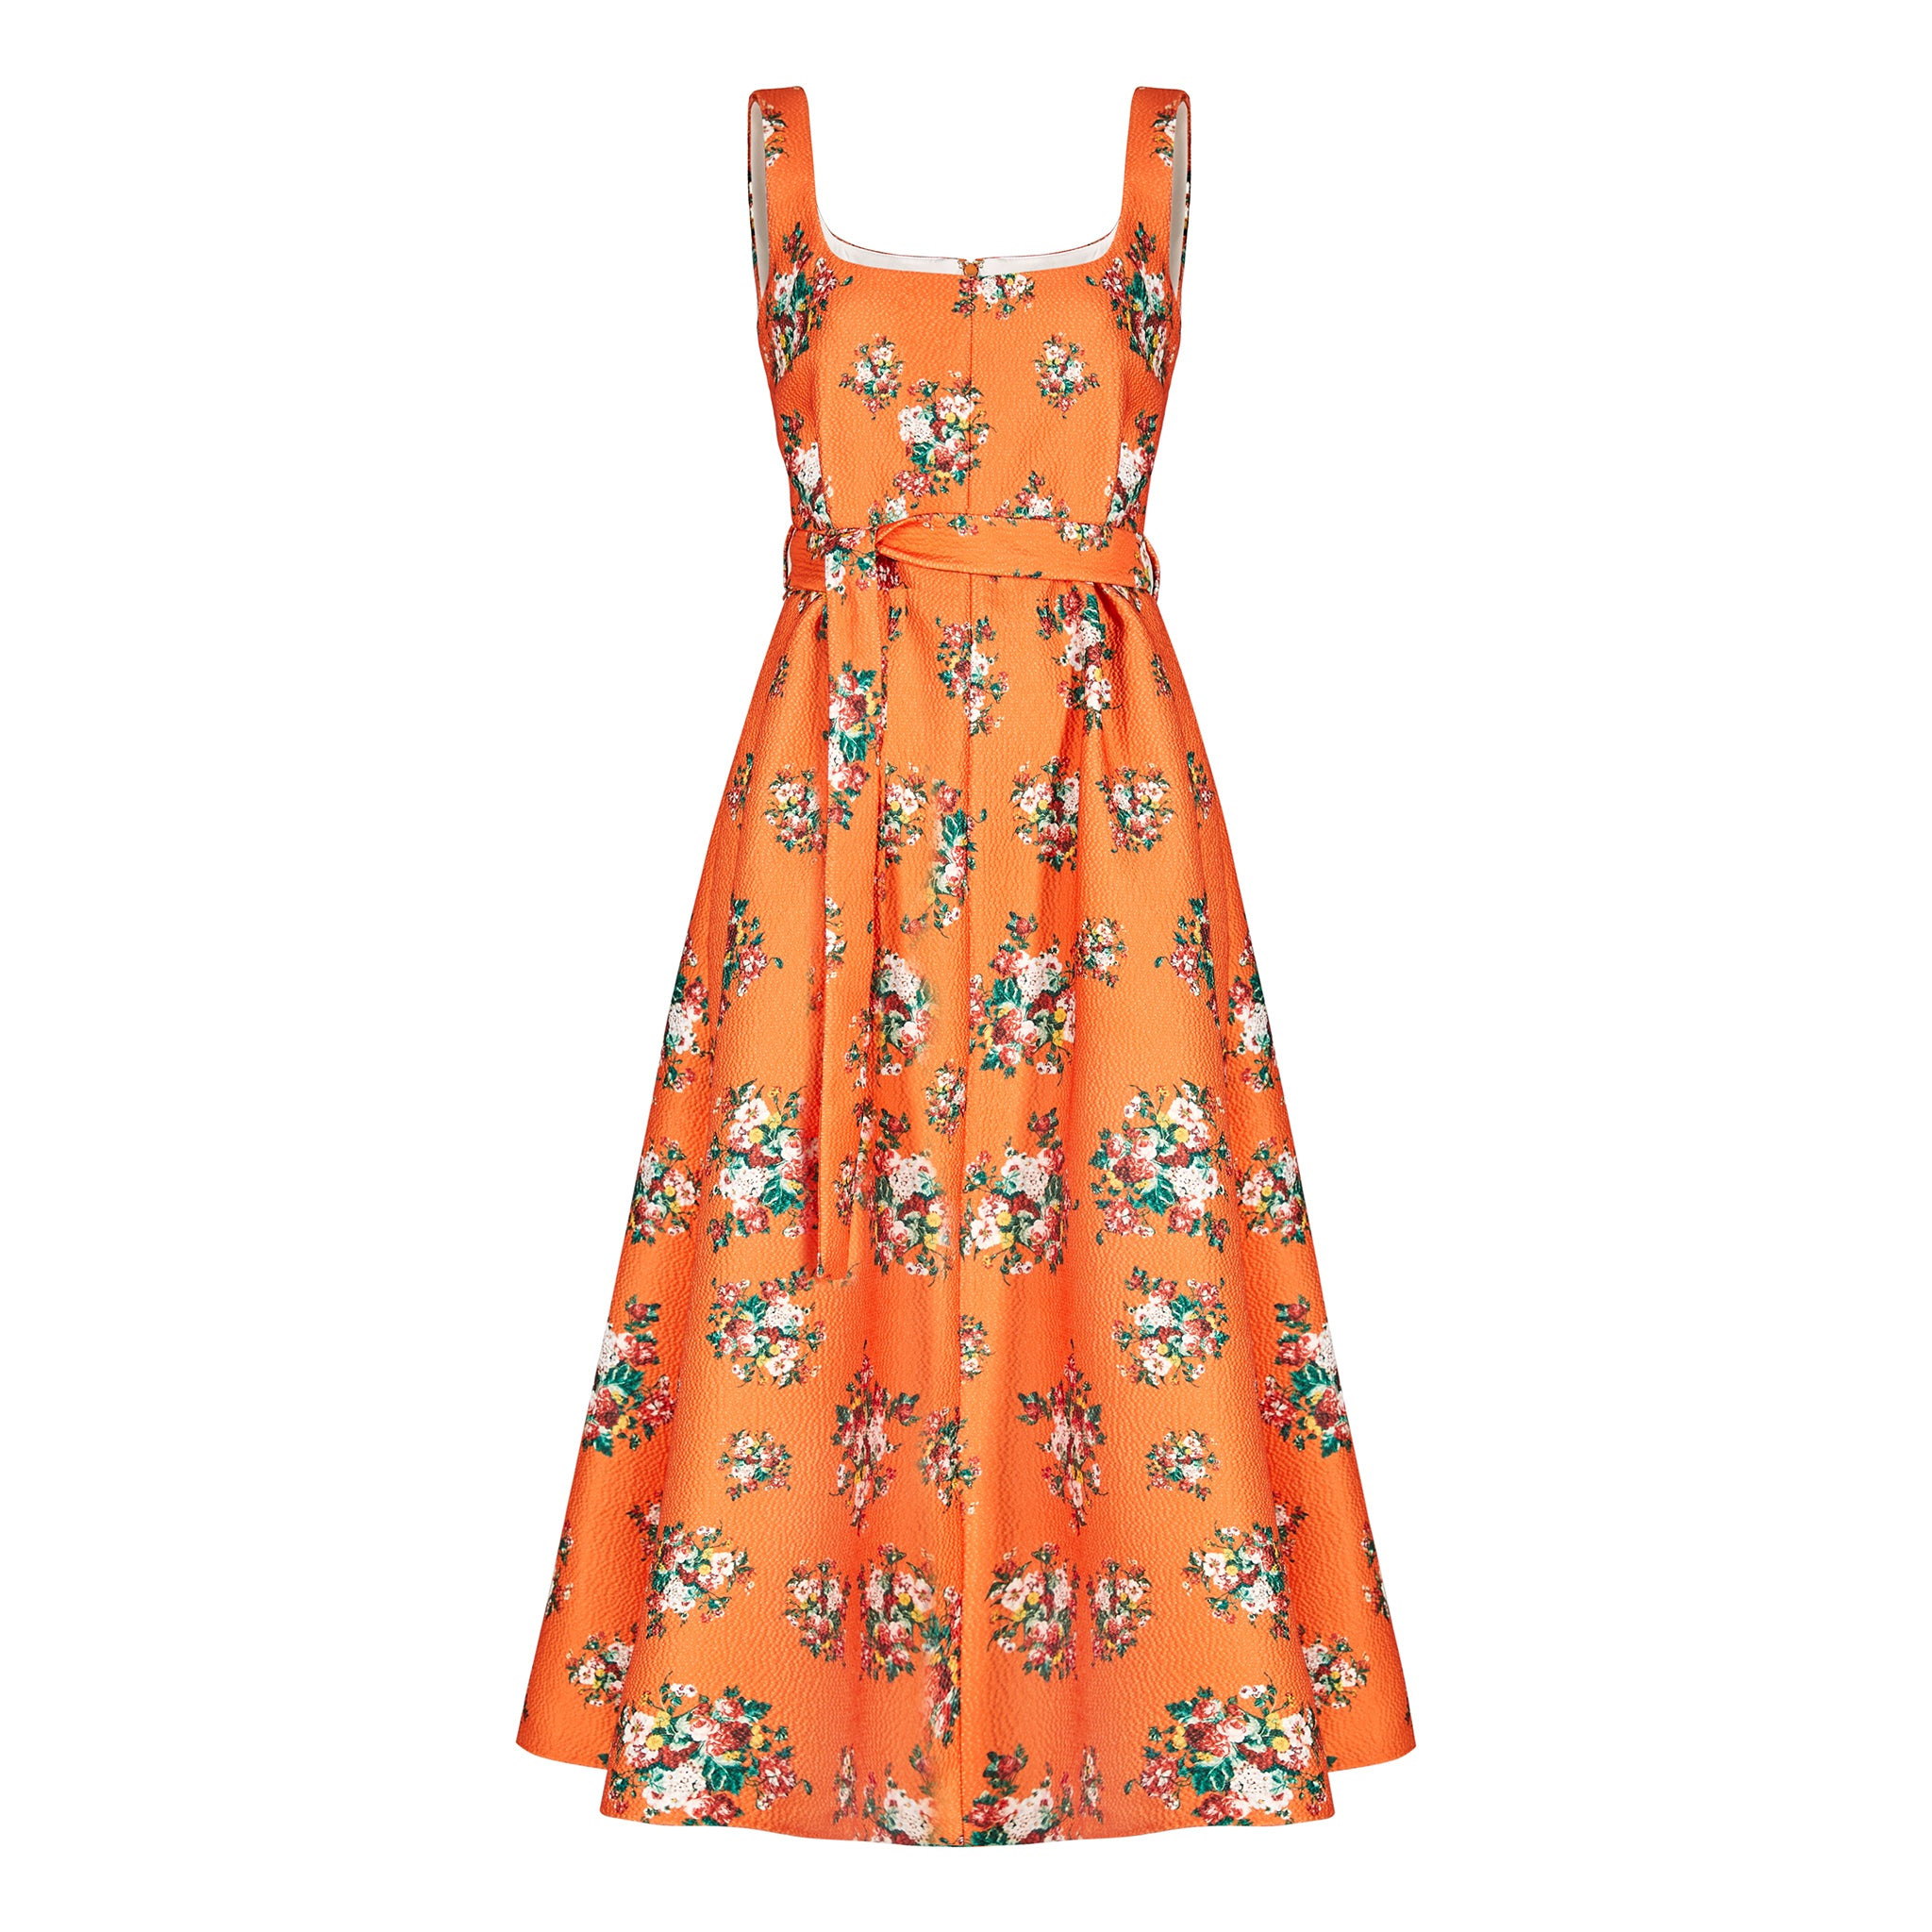 orange floral printed sleeveless dress